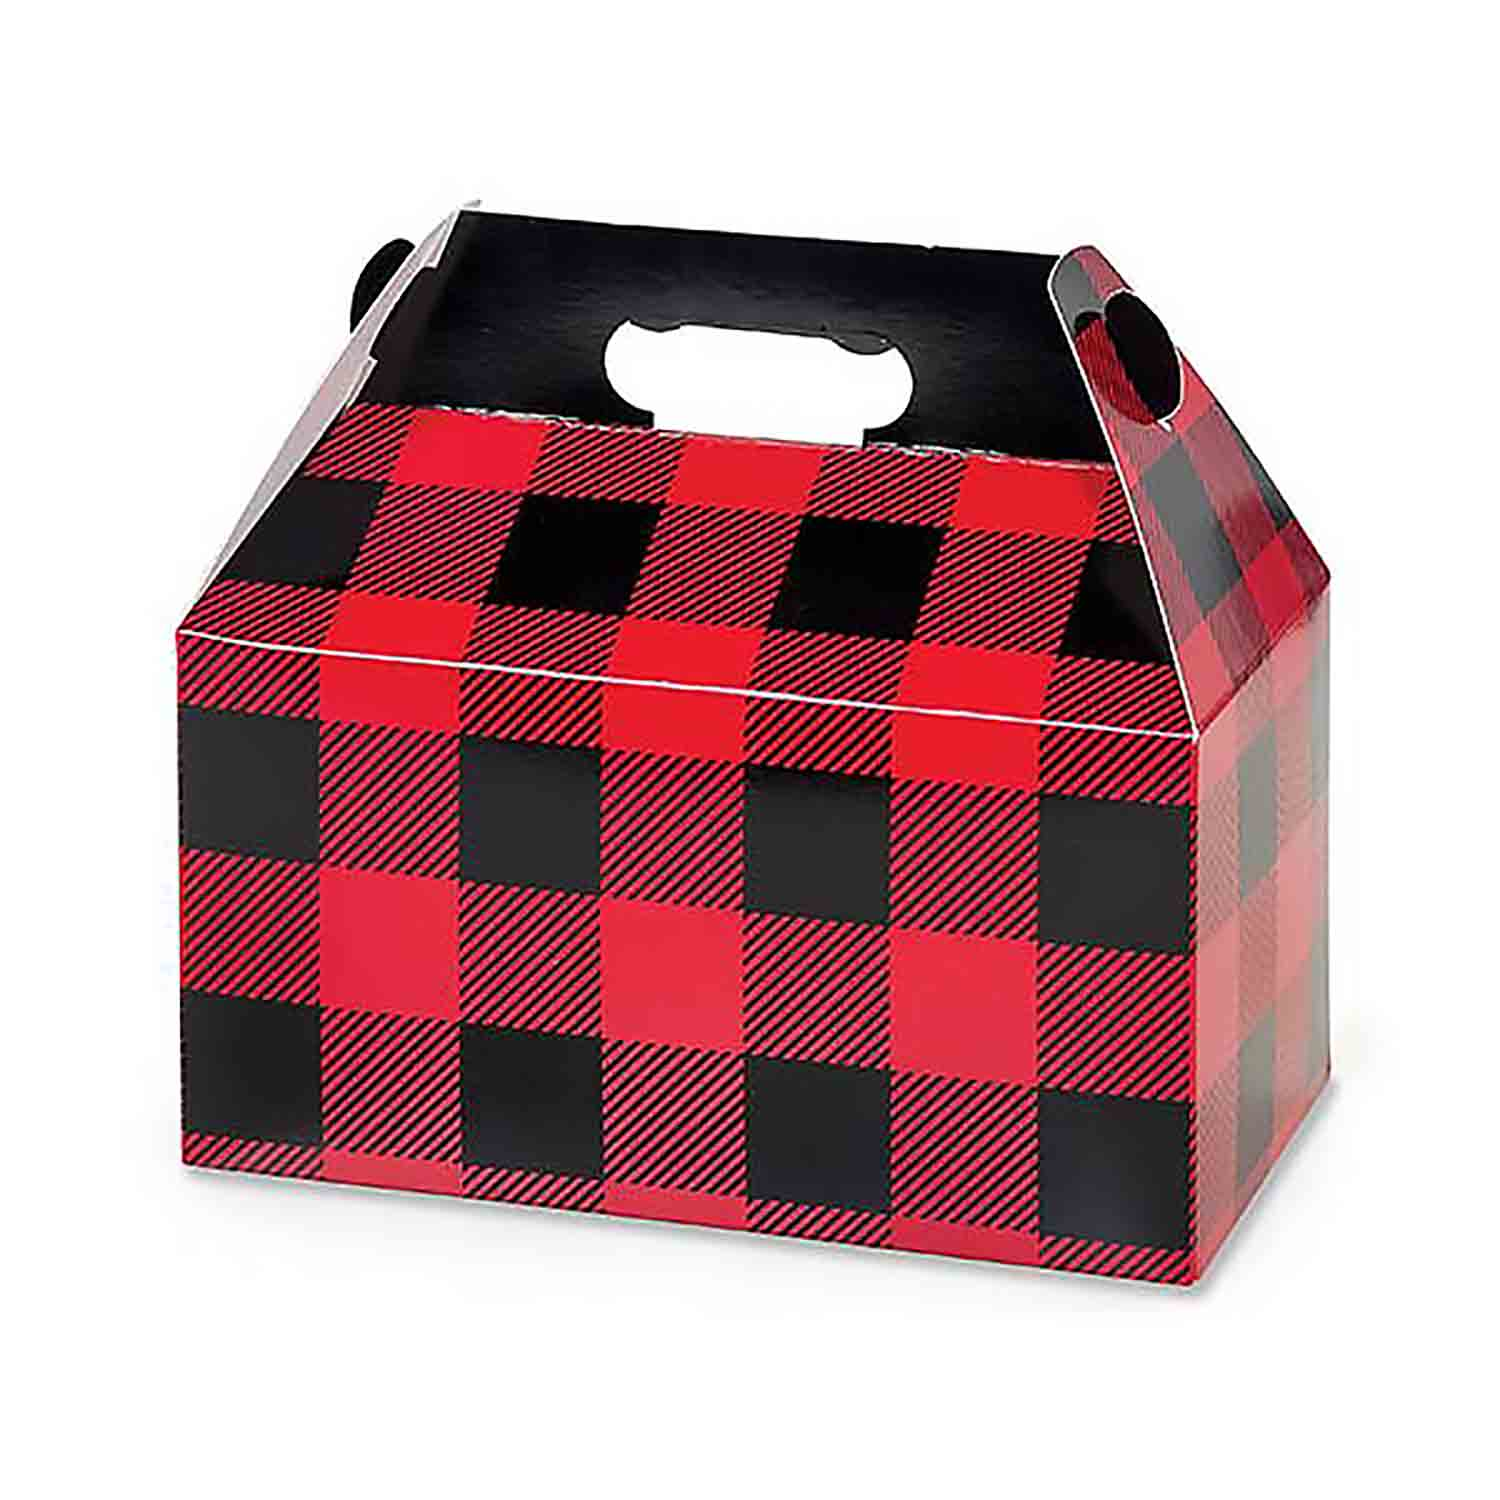 4 lb. Buffalo Plaid Gable Box